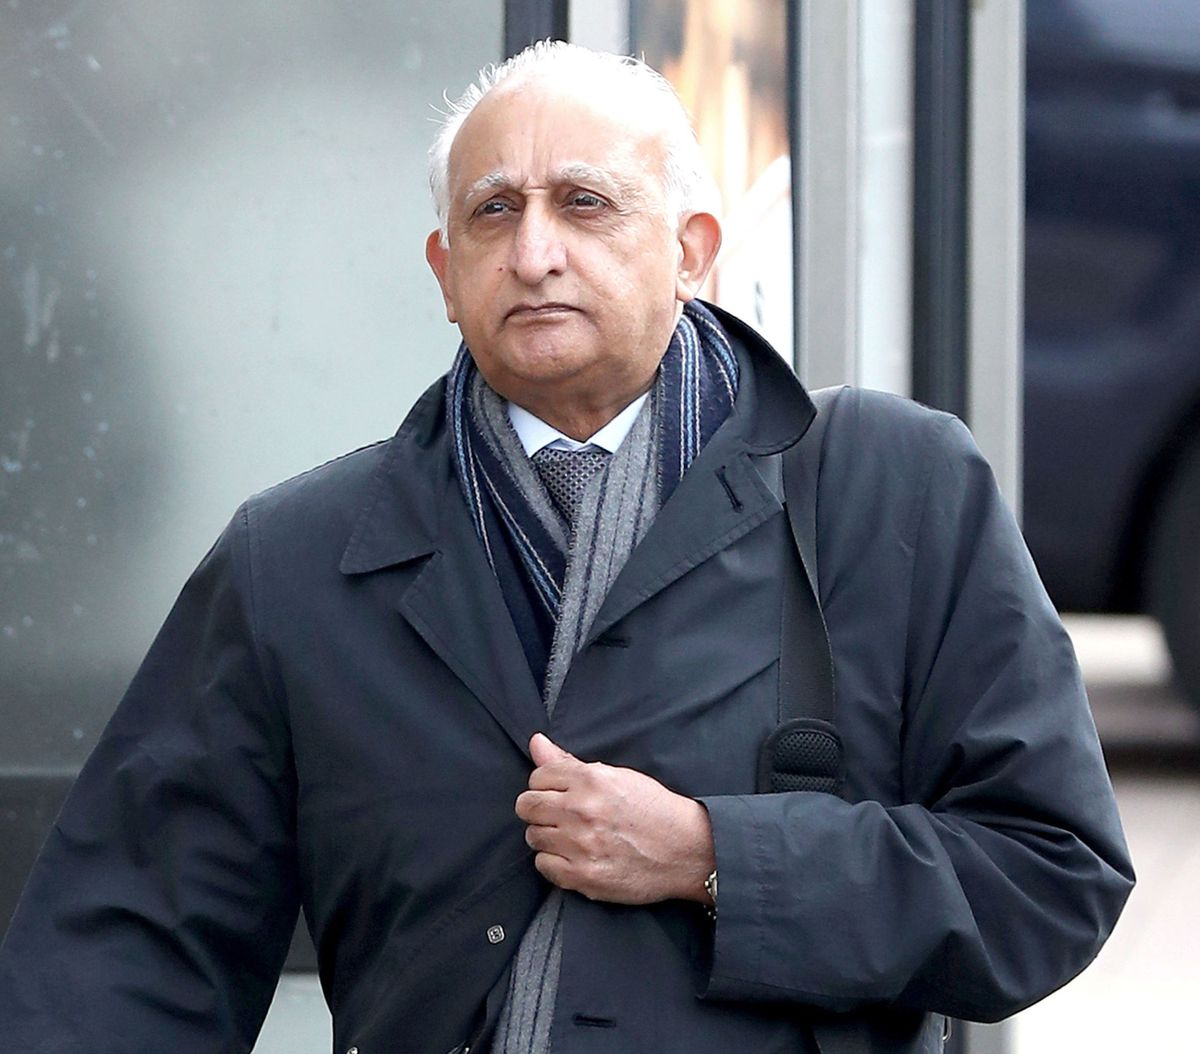 Ajaz Karim was found guilty of assaulting six girls between 1985 and 1993